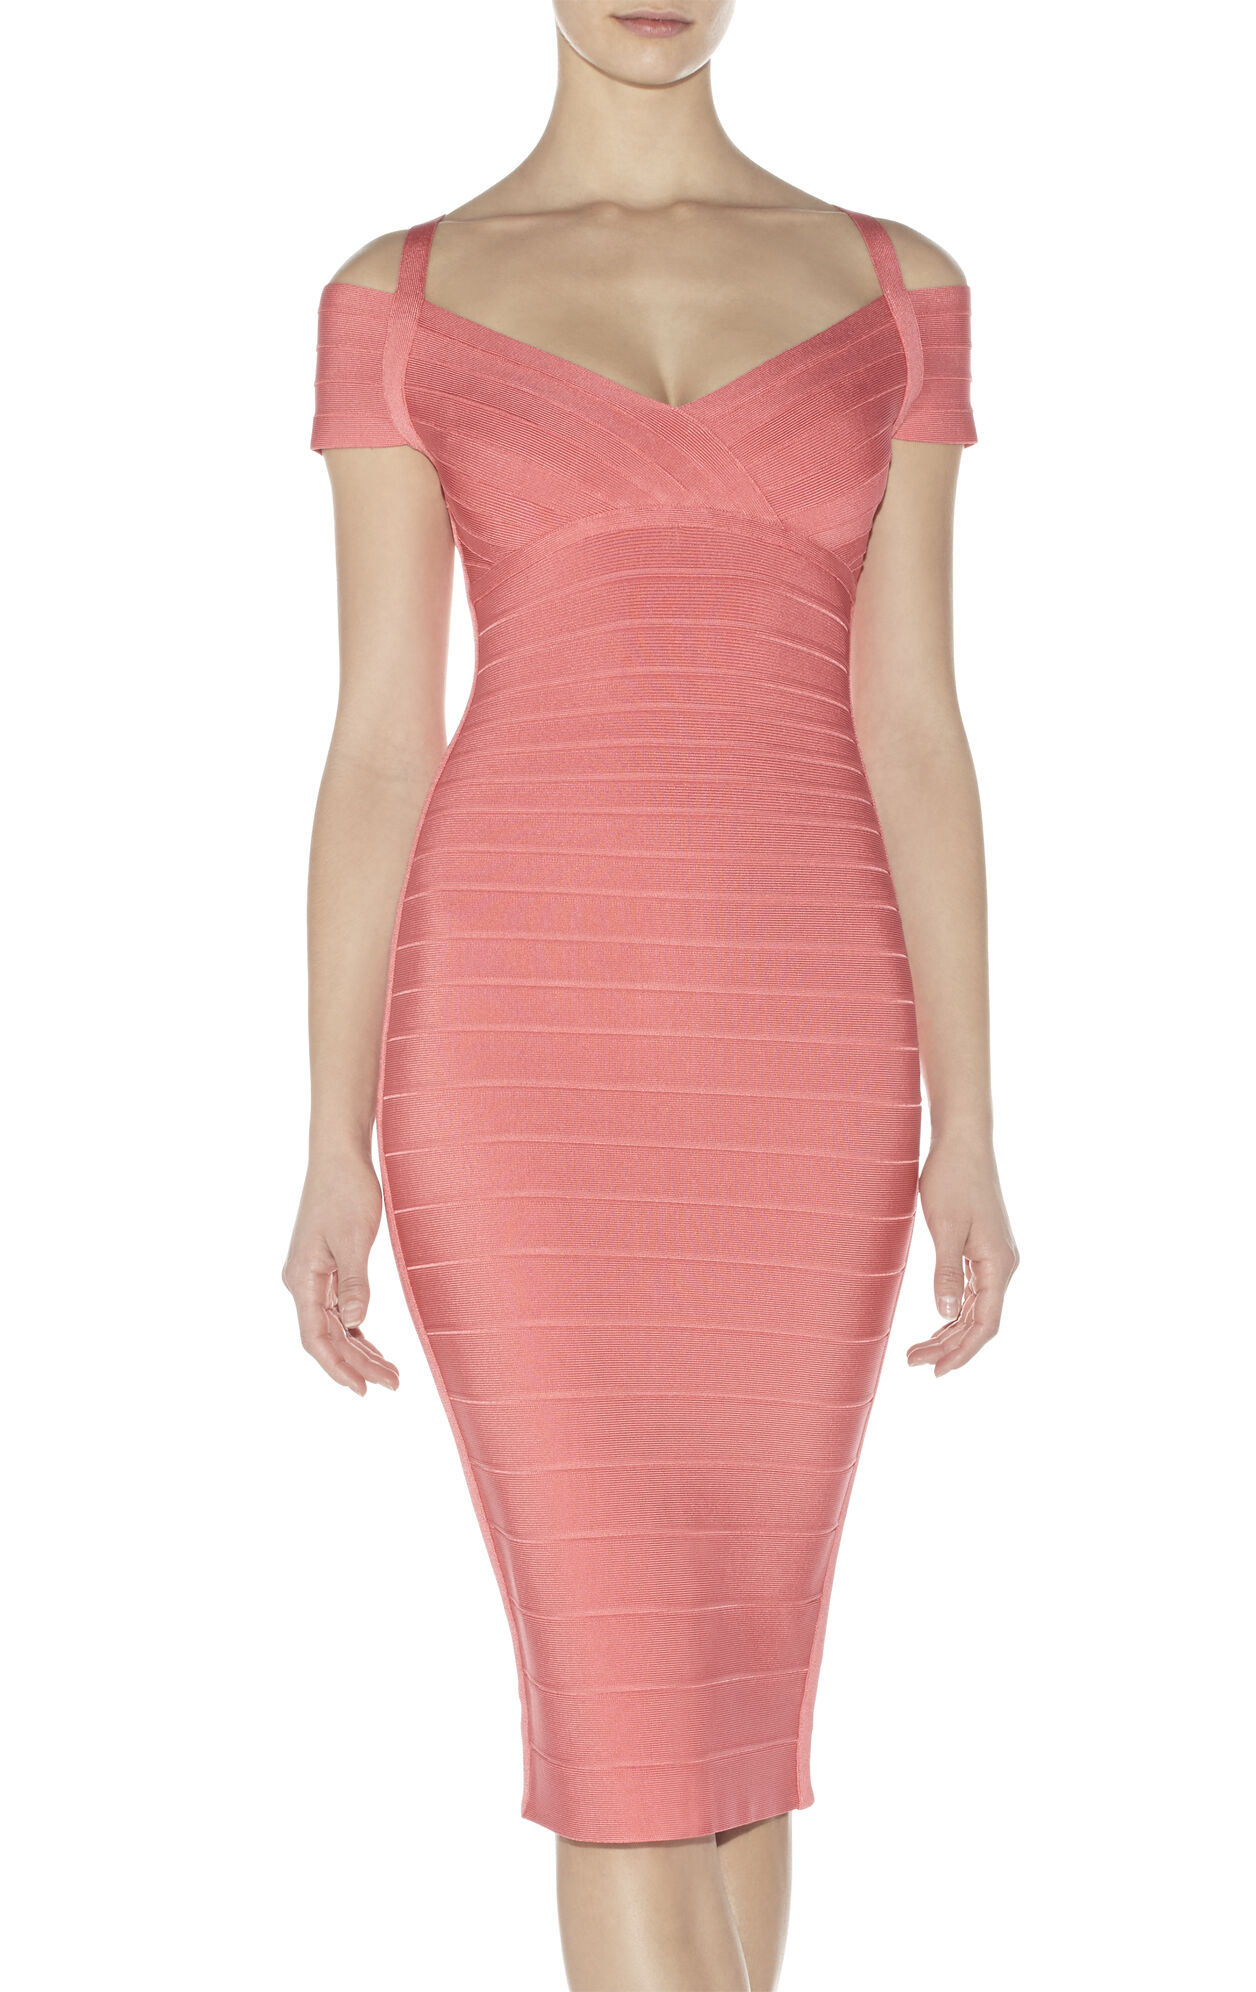 Kelis Signature Off-the-Shoulder Bandage Dress